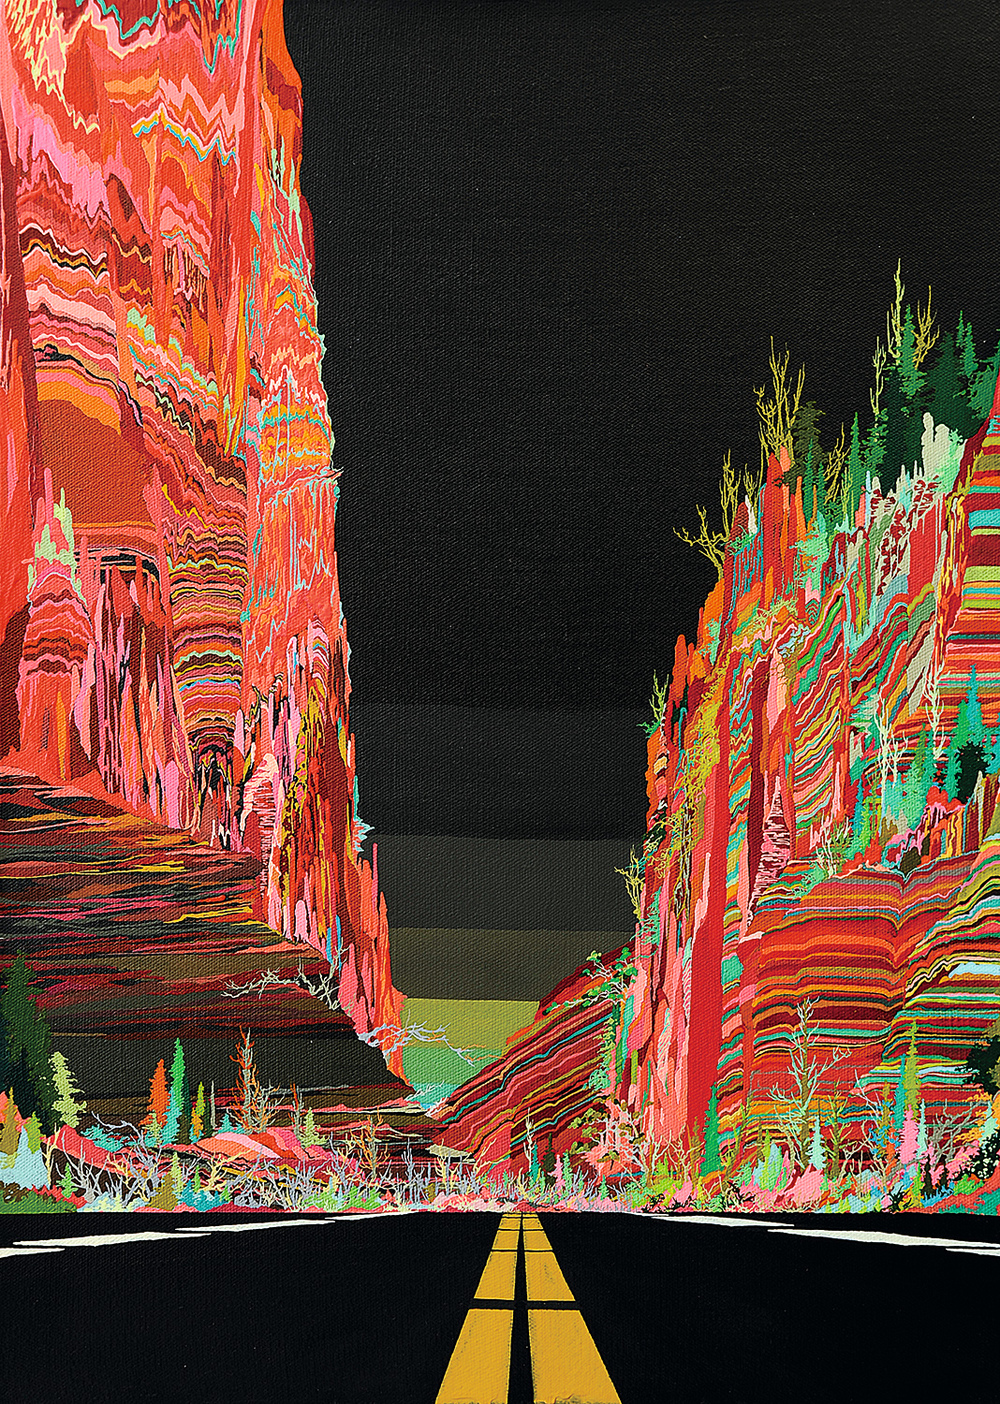 Zhou Fan 周范, Landscape 01:39 风景 01:39, 2015, Acrylic on canvas 布面丙烯, 70 x 51 cm